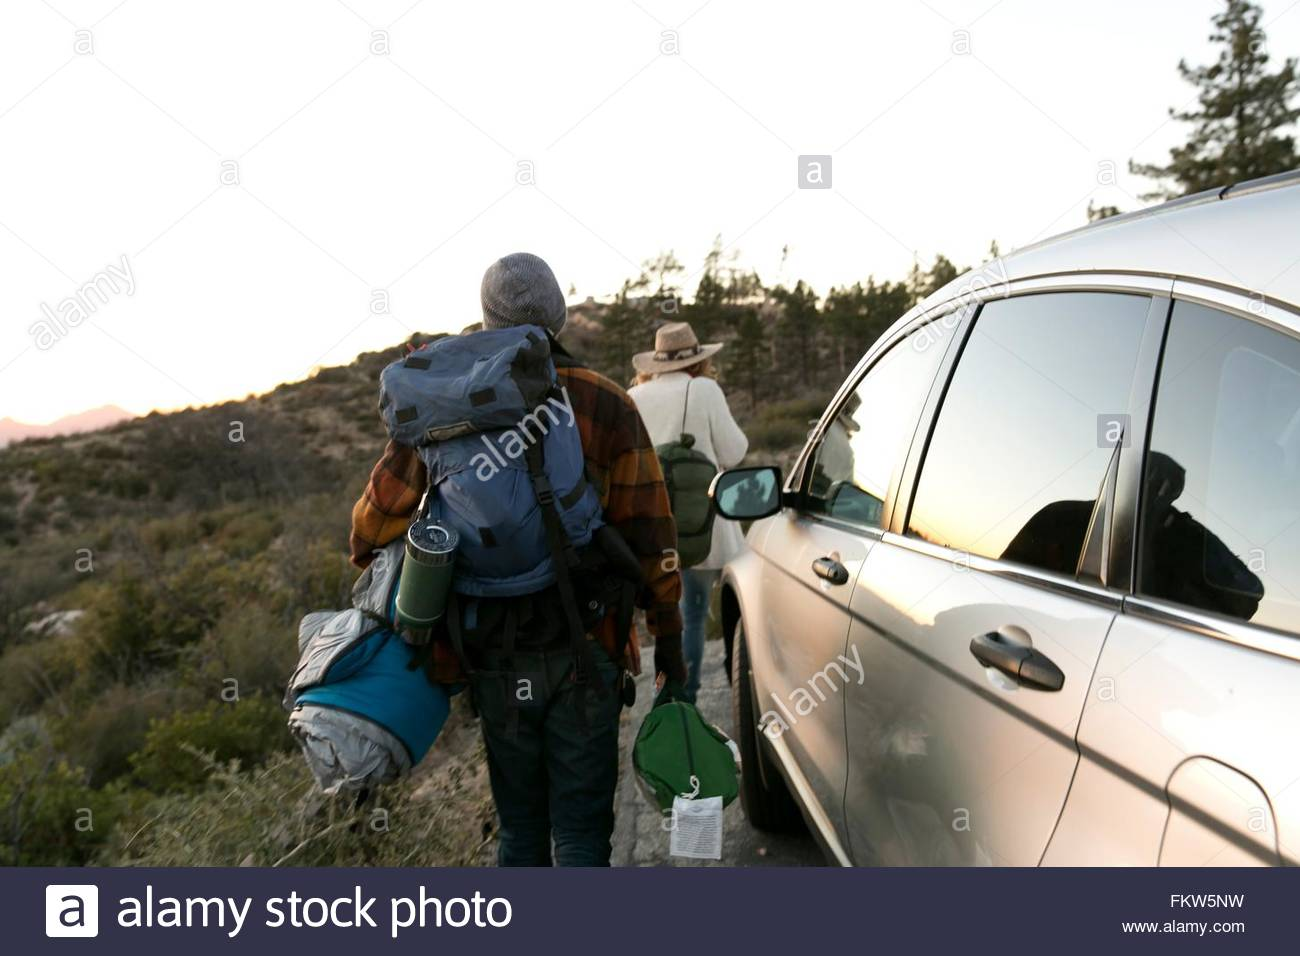 Young couple walking away from parked car carrying camping equipment, rear view - Stock Image